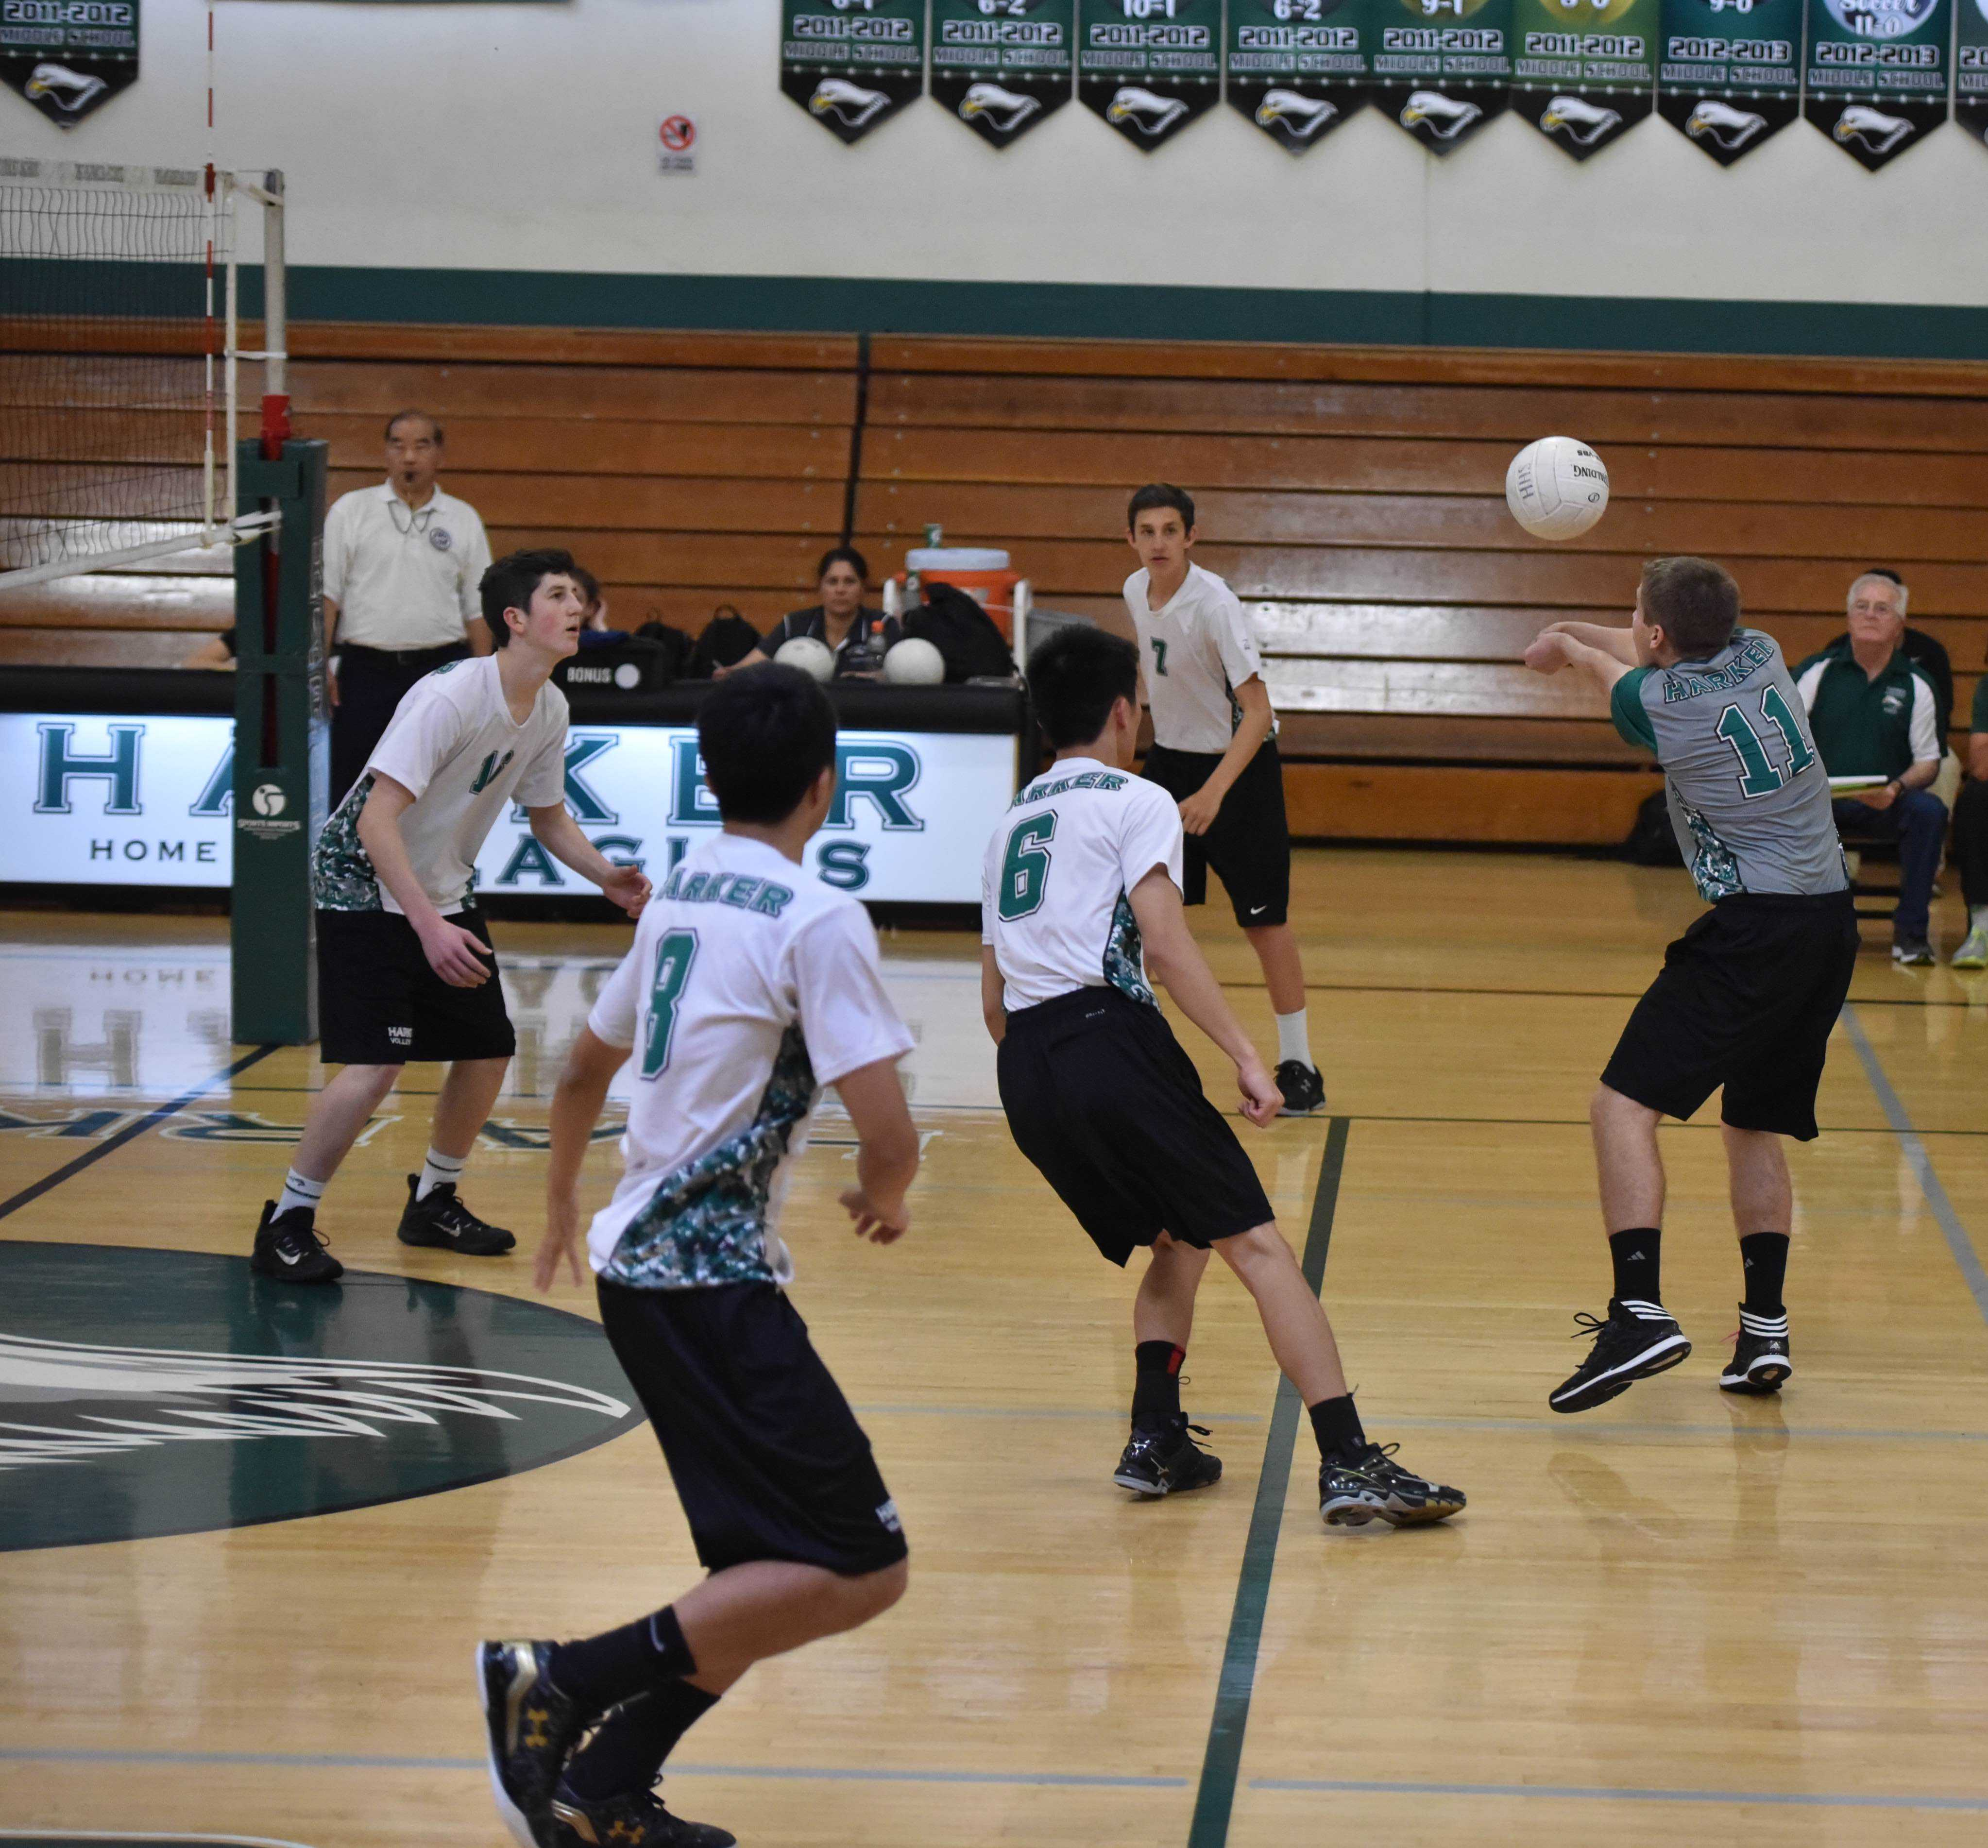 Libero Jonathan Schwartz (11) digs a hit from Wilcox while Andrew Gu (11), Ray Song (11) and Jarrett Anderson (9) get into hitting position.